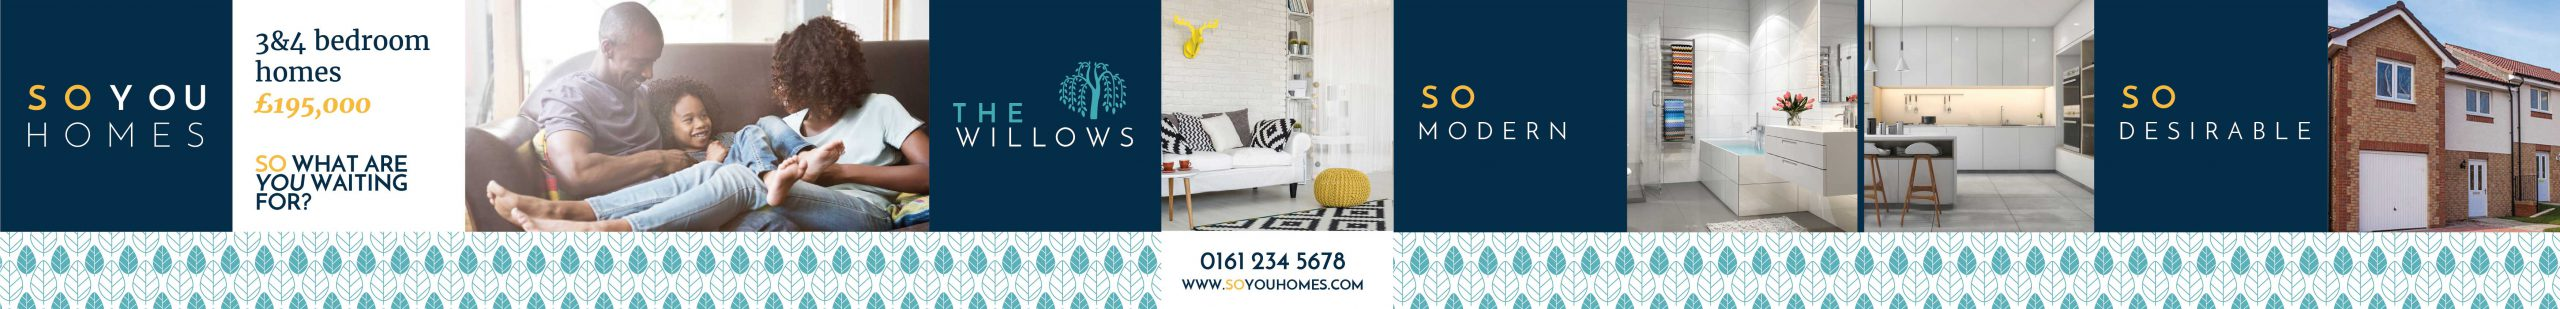 hoarding advertising Sou You Homes The Willows housing development, featuring images of inside homes and a pattern of leaves running along the bottom